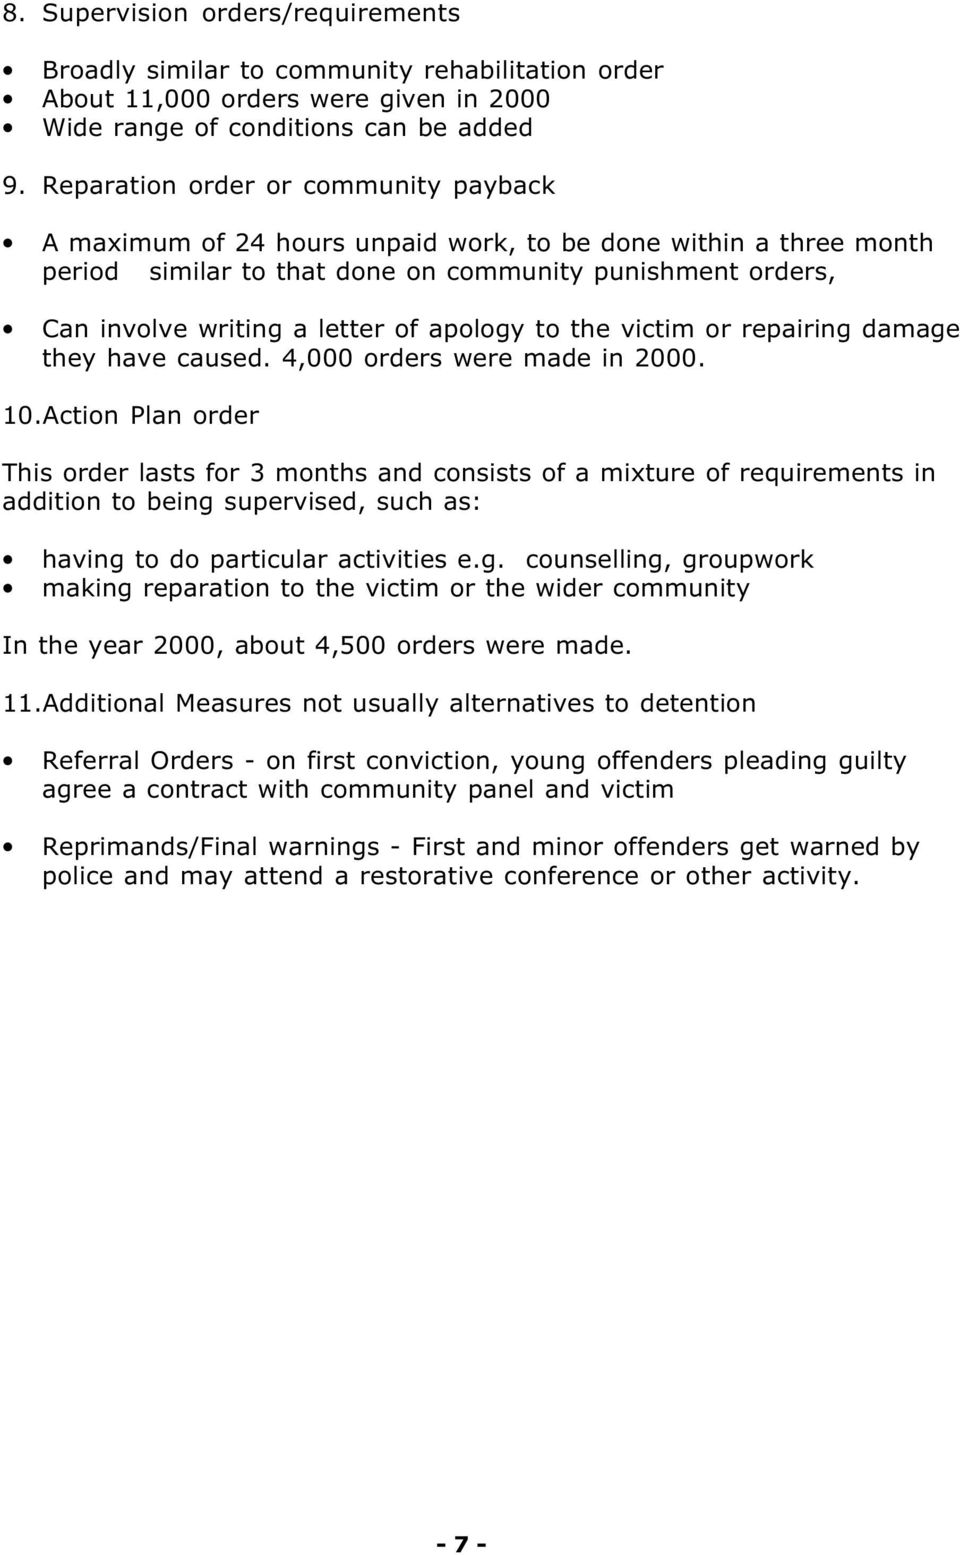 apology to the victim or repairing damage they have caused. 4,000 orders were made in 2000. 10.